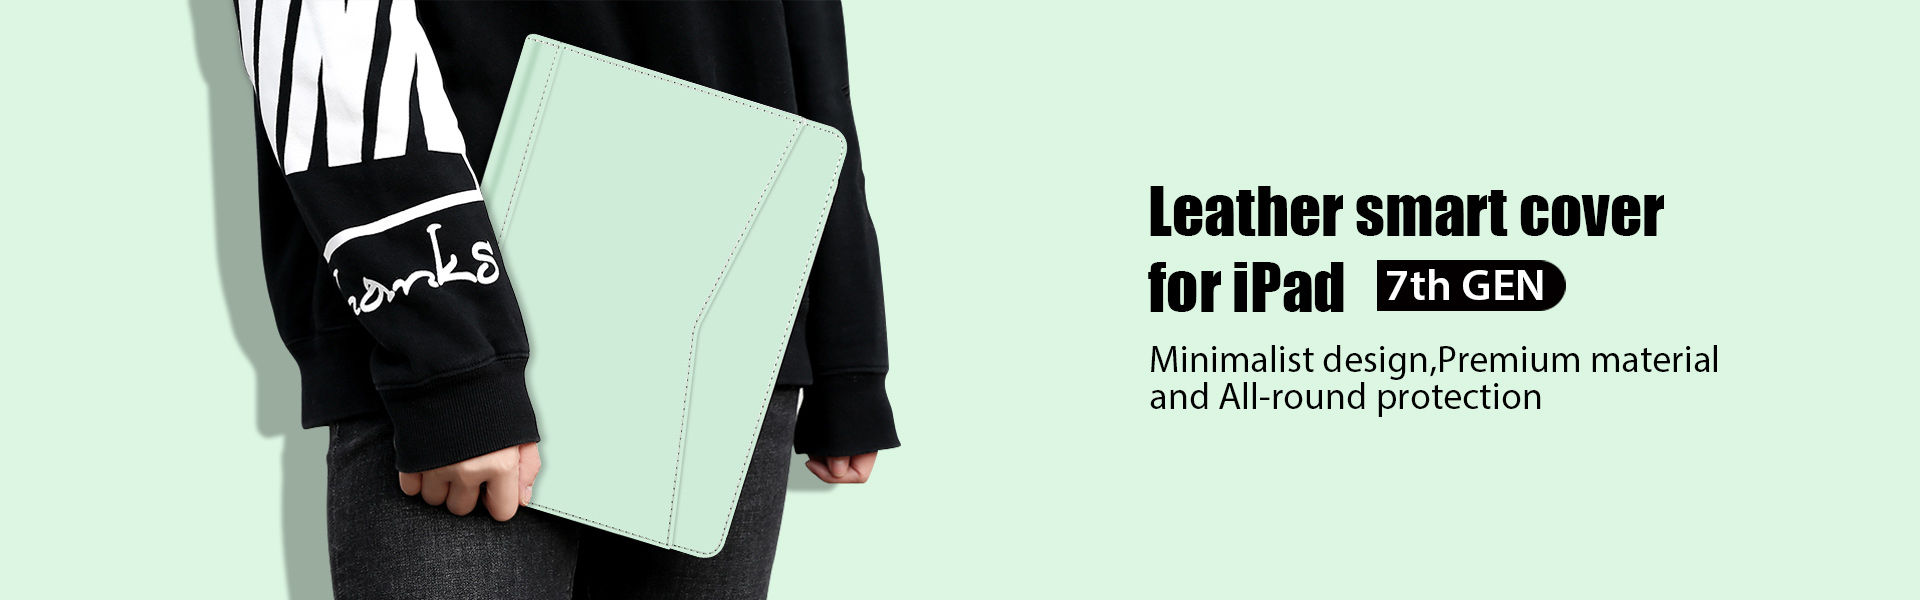 Leather case for iPad 7th GEN.